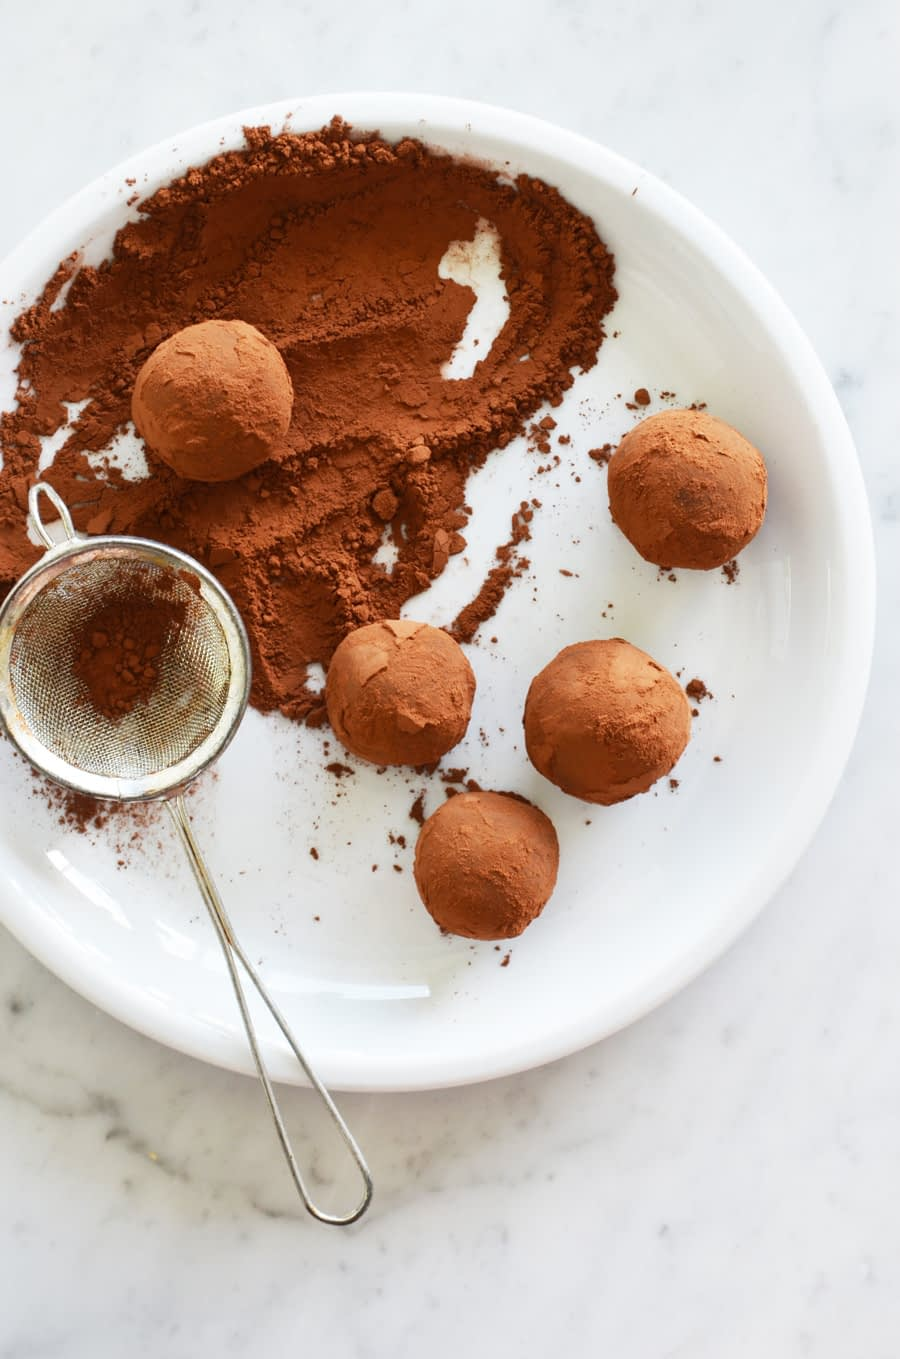 Whole food healthier 3 ingredient chocolate truffles by That Healthy Kitchen